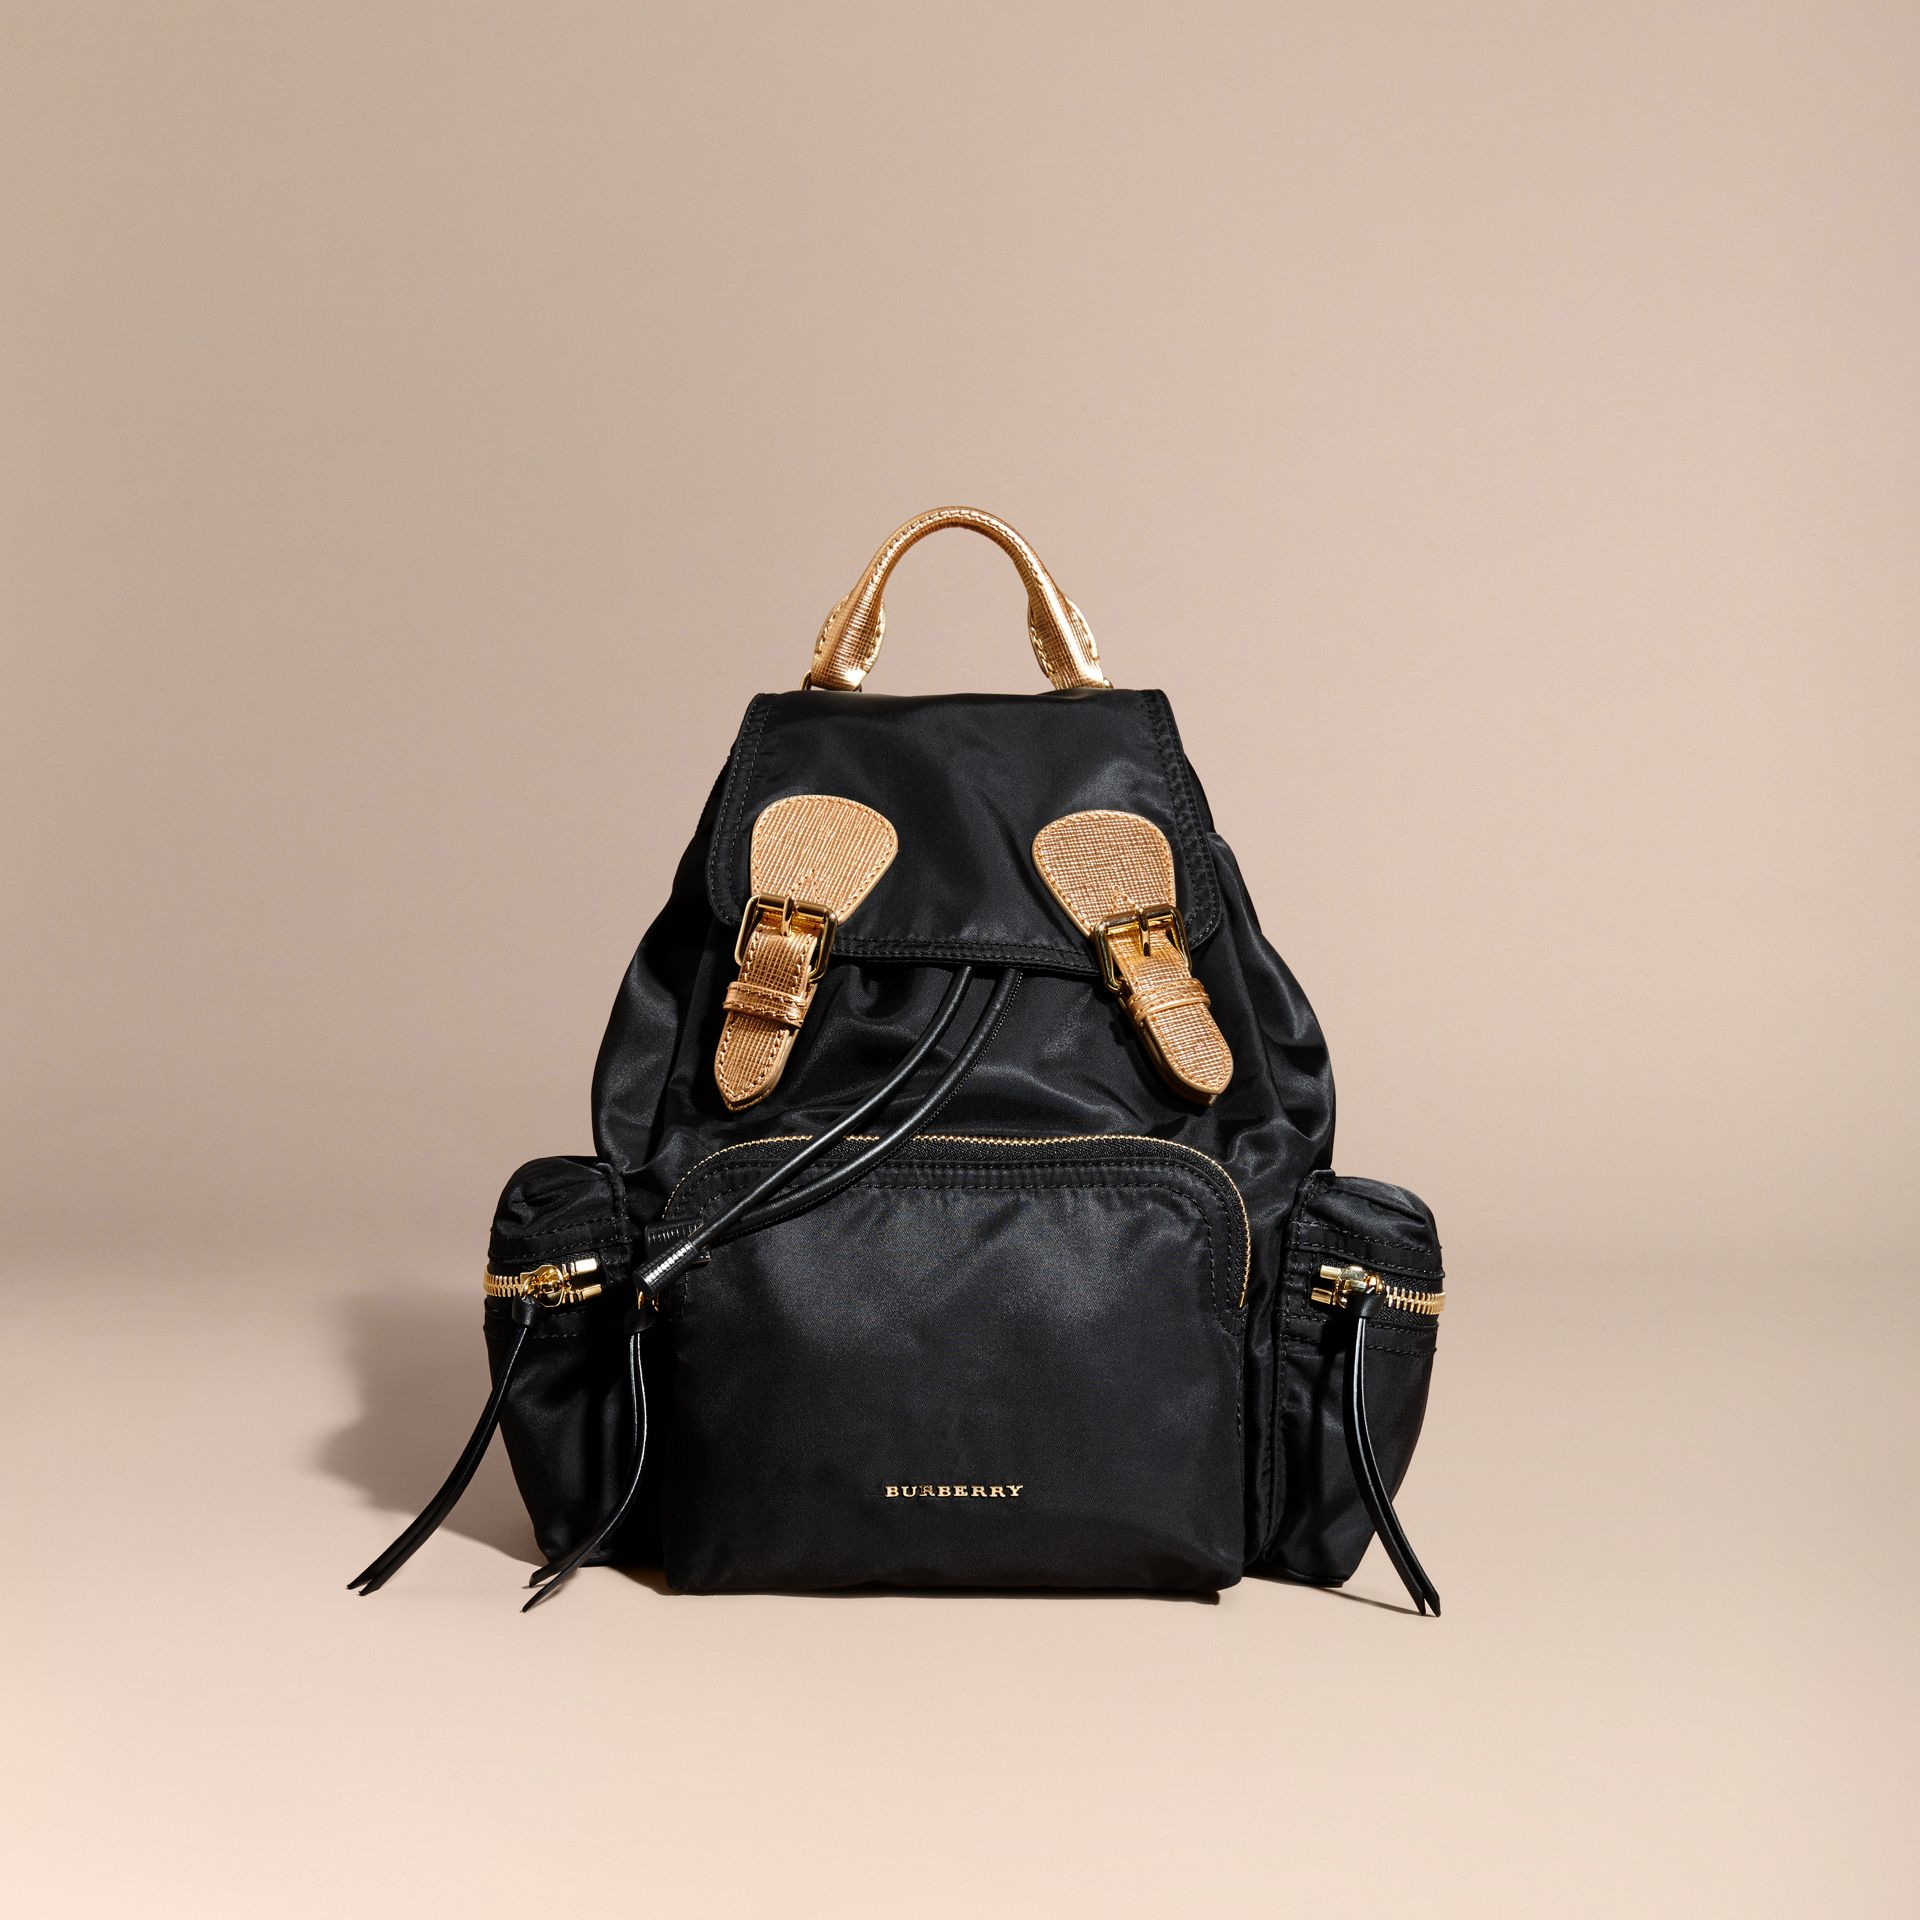 Black/gold The Medium Rucksack in Two-tone Nylon and Leather Black/gold - gallery image 8